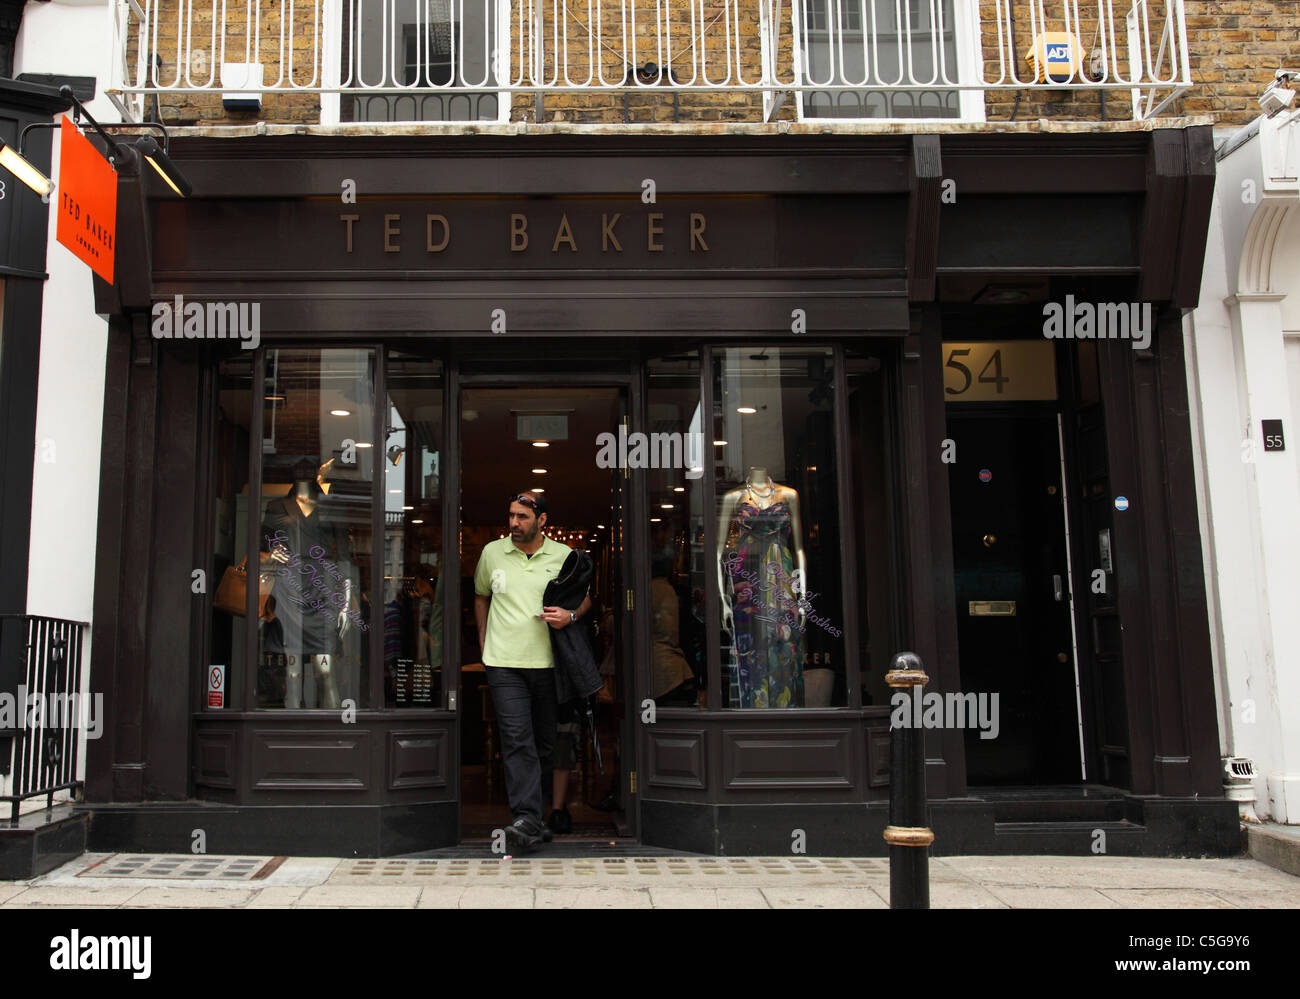 7d89c3980 Ted Baker Store Stock Photos   Ted Baker Store Stock Images - Alamy